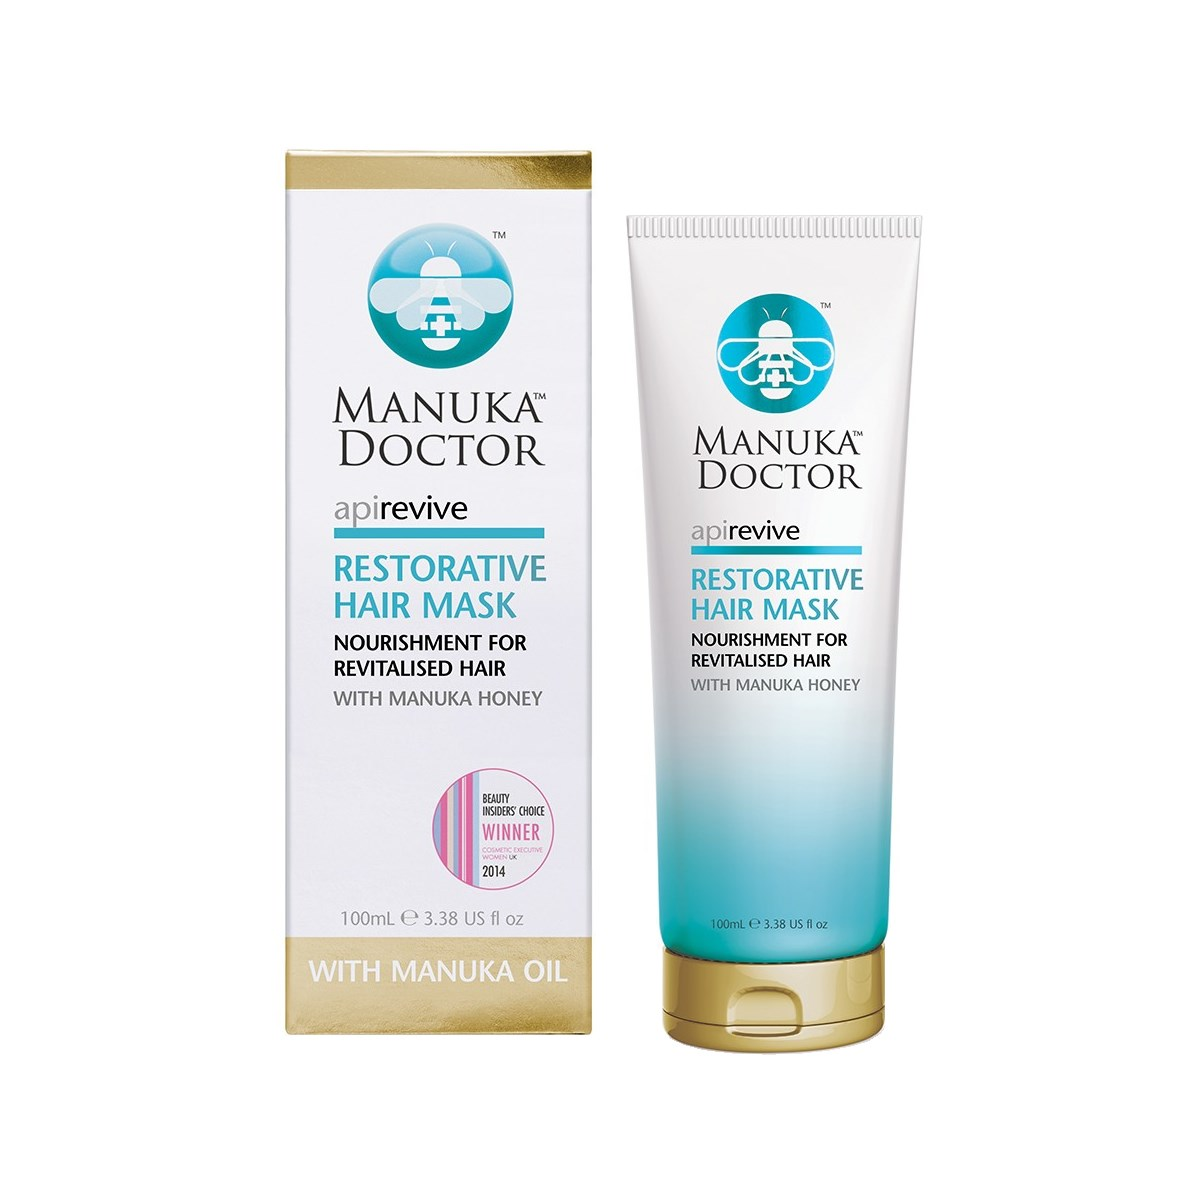 Manuka Doctor ApiRevive Restore Hair Mask